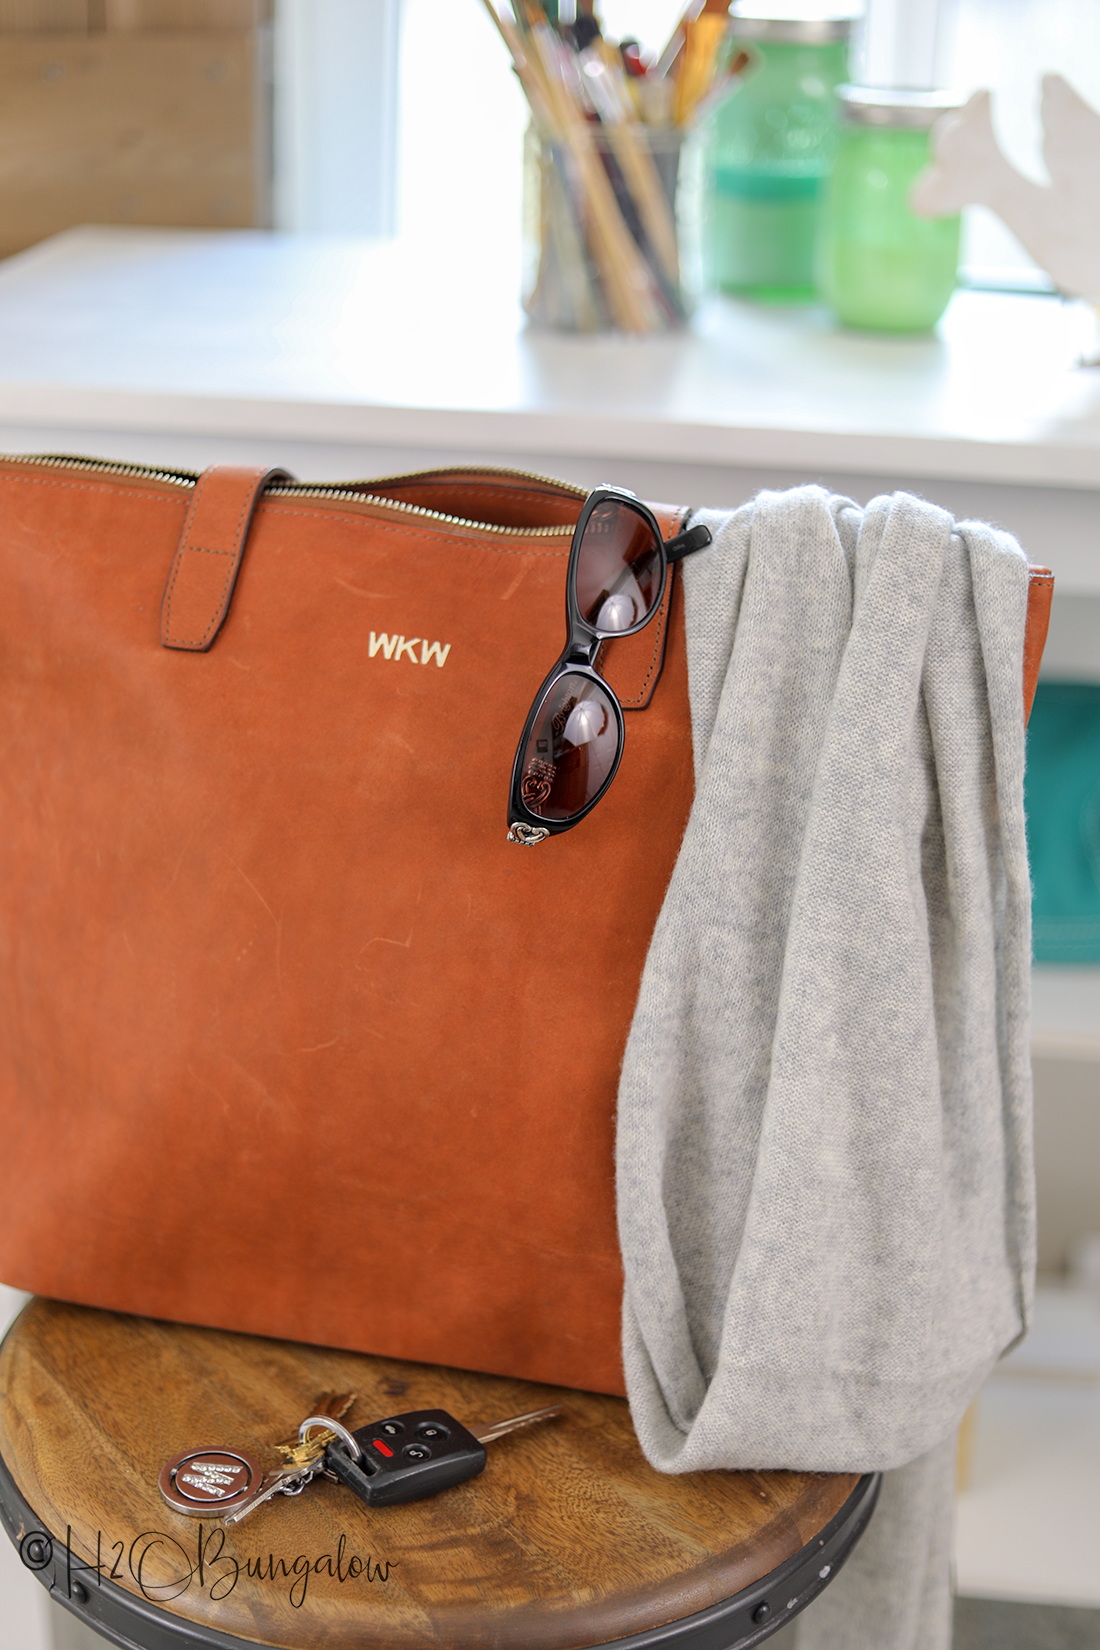 My Ballard tote keeps everything organized for my workday